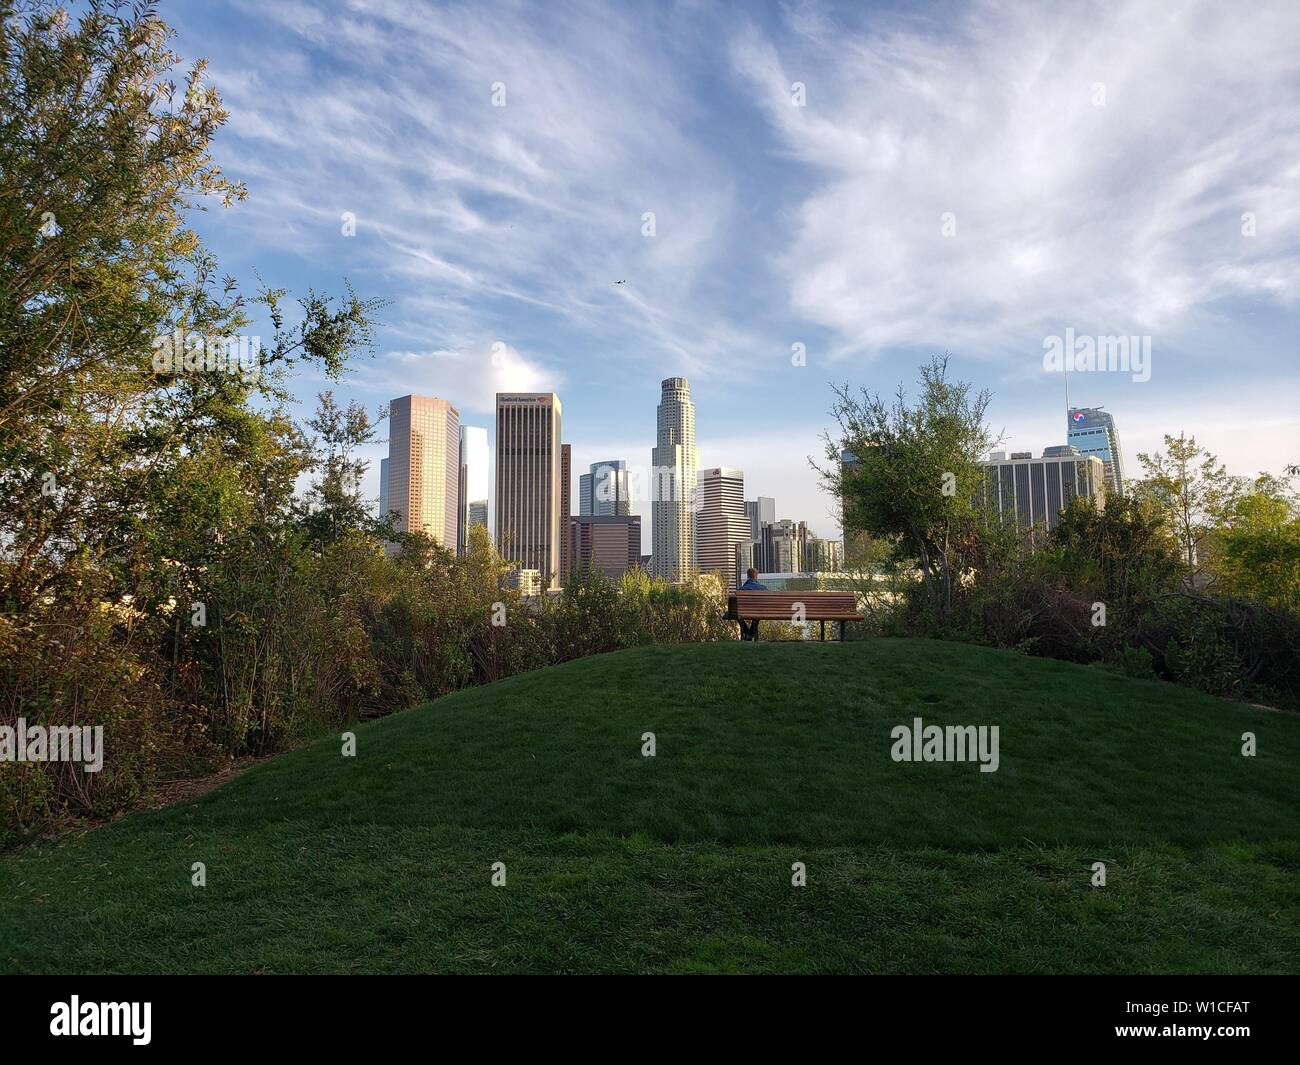 Spectacular view of downtown Los Angeles from a green park with a hill and a bench, Vista Hermosa National Park. Stock Photo